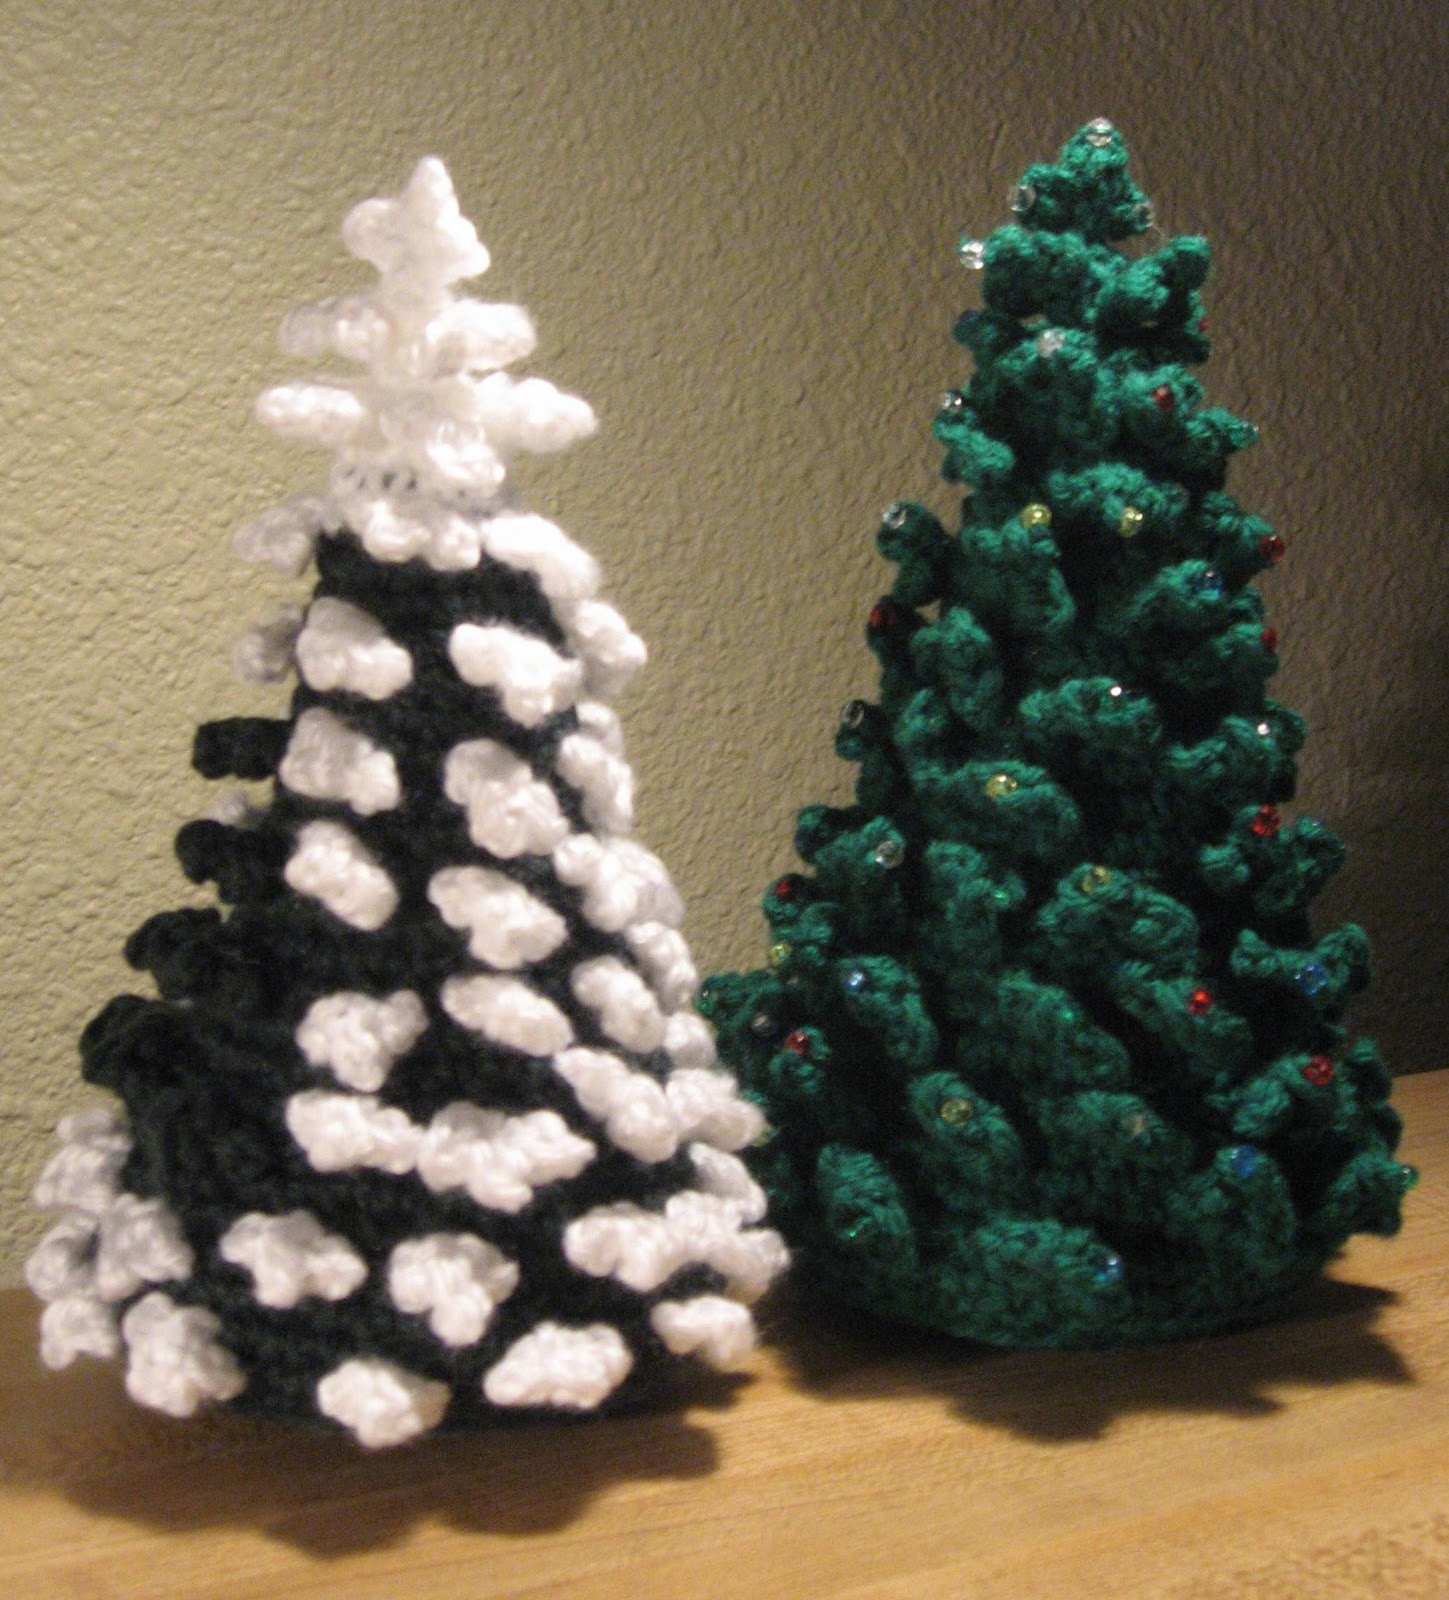 Best Of Loops and Ramblings Evergreen Tree Pattern Crochet Christmas Trees Of Marvelous 46 Ideas Crochet Christmas Trees